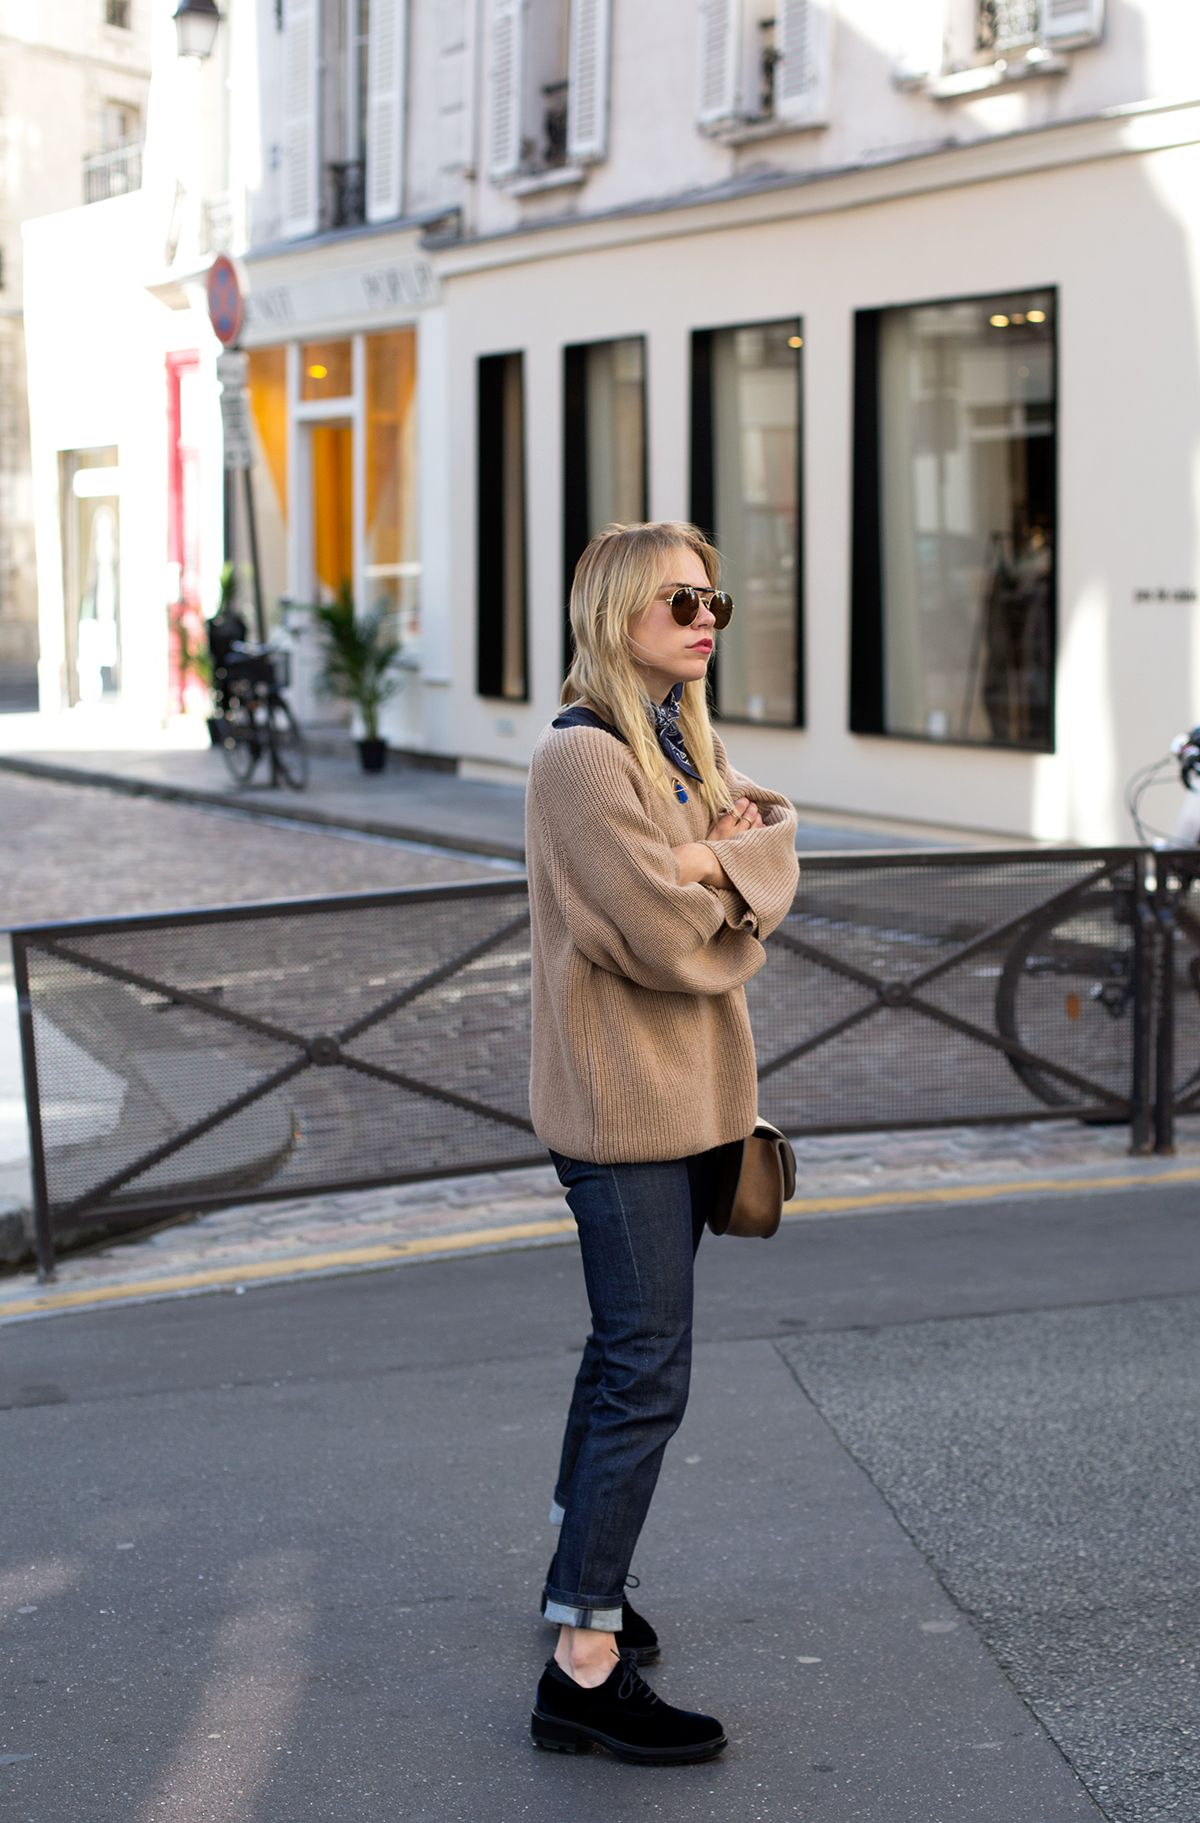 Top basics needed for travel on the blog today via @SSENSE & @ShopStyle